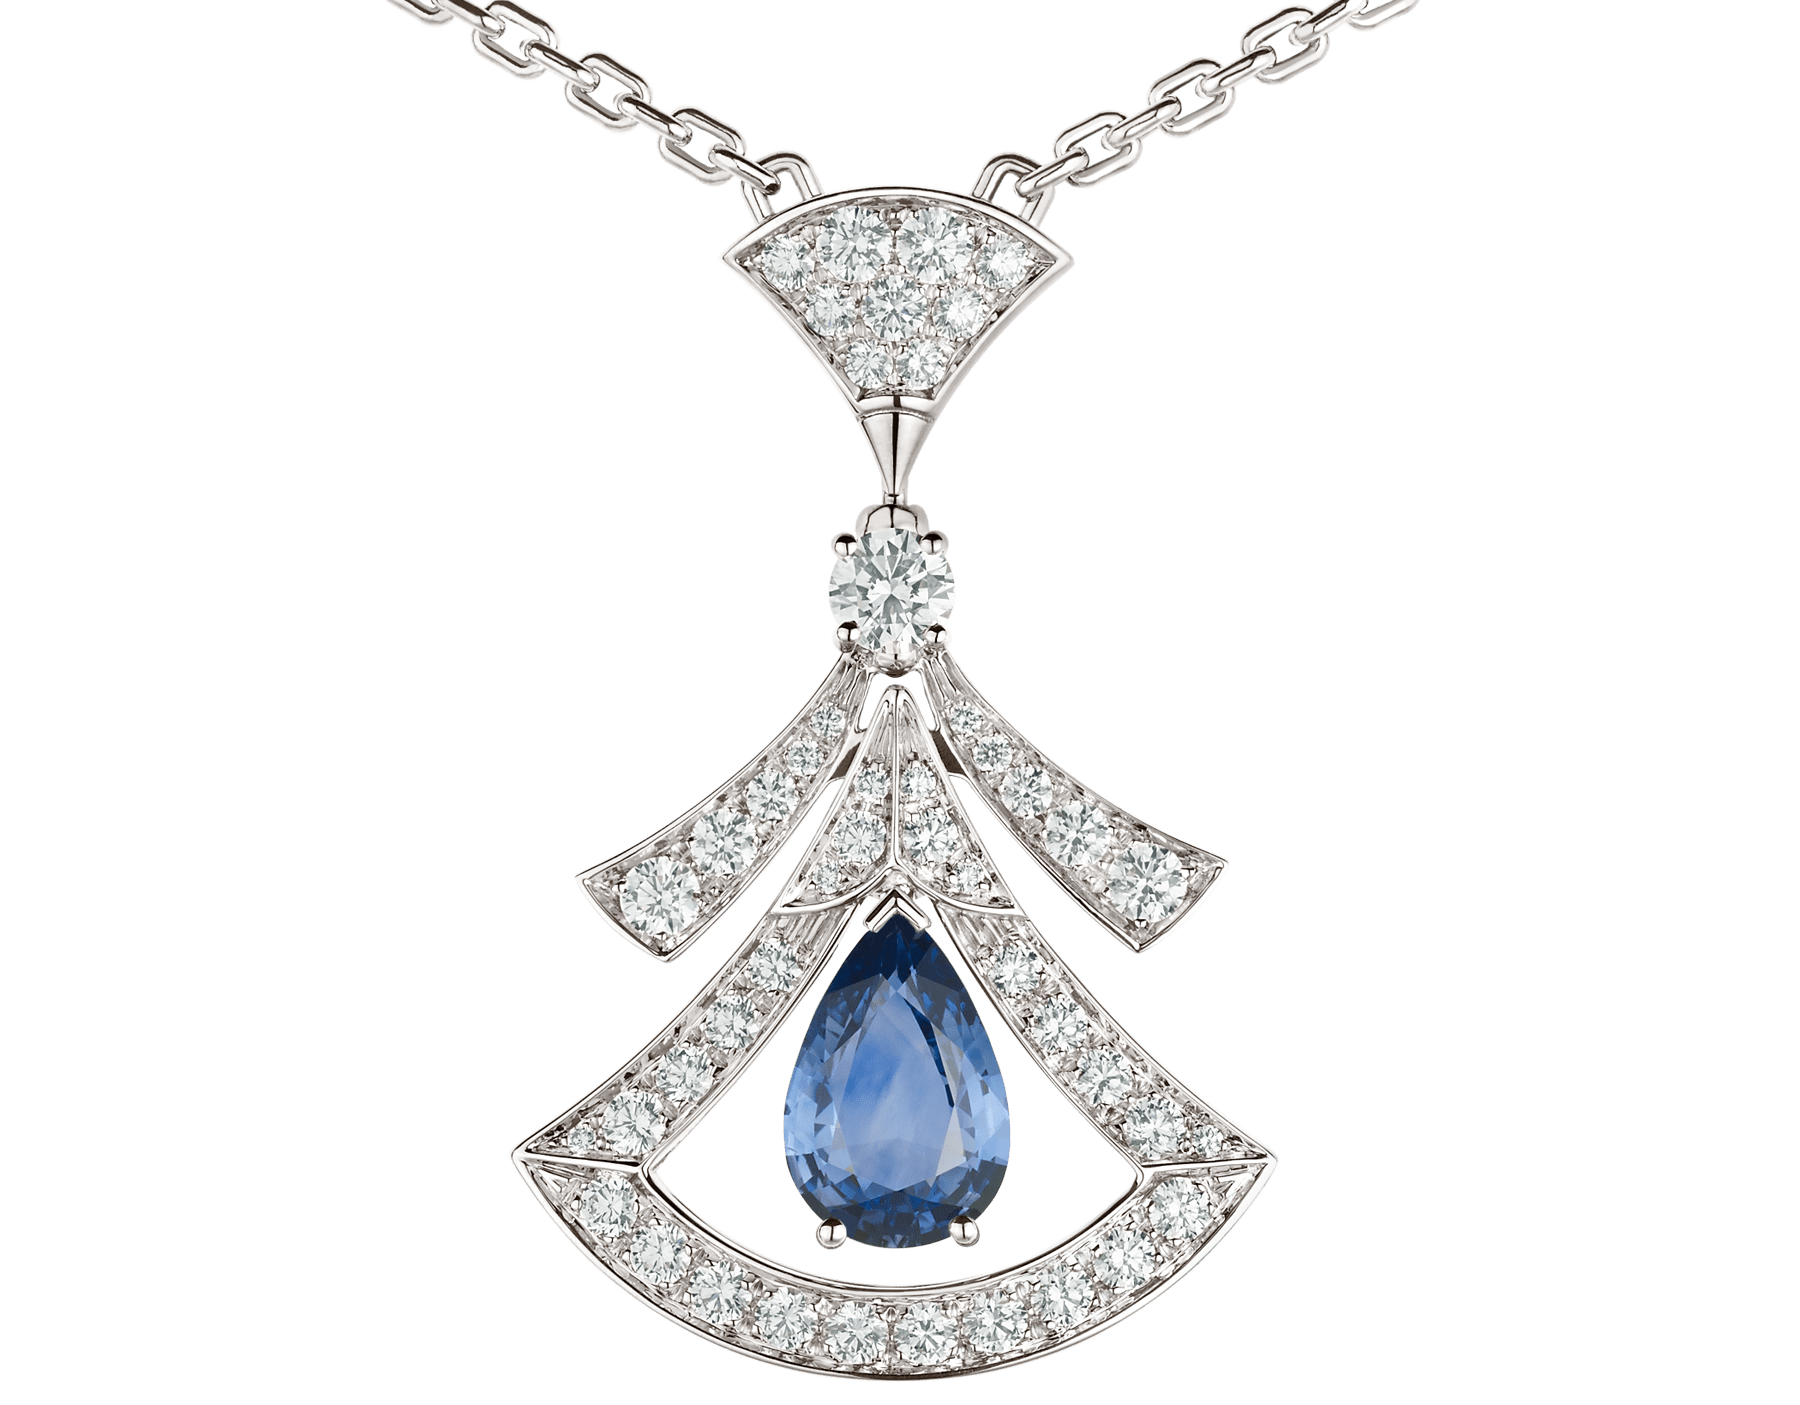 DIVAS' DREAM 18 kt white gold openwork necklace set with a pear-shaped sapphire, round brilliant-cut sapphires, a round brilliant-cut diamond and pavé diamonds. 357325 image 4